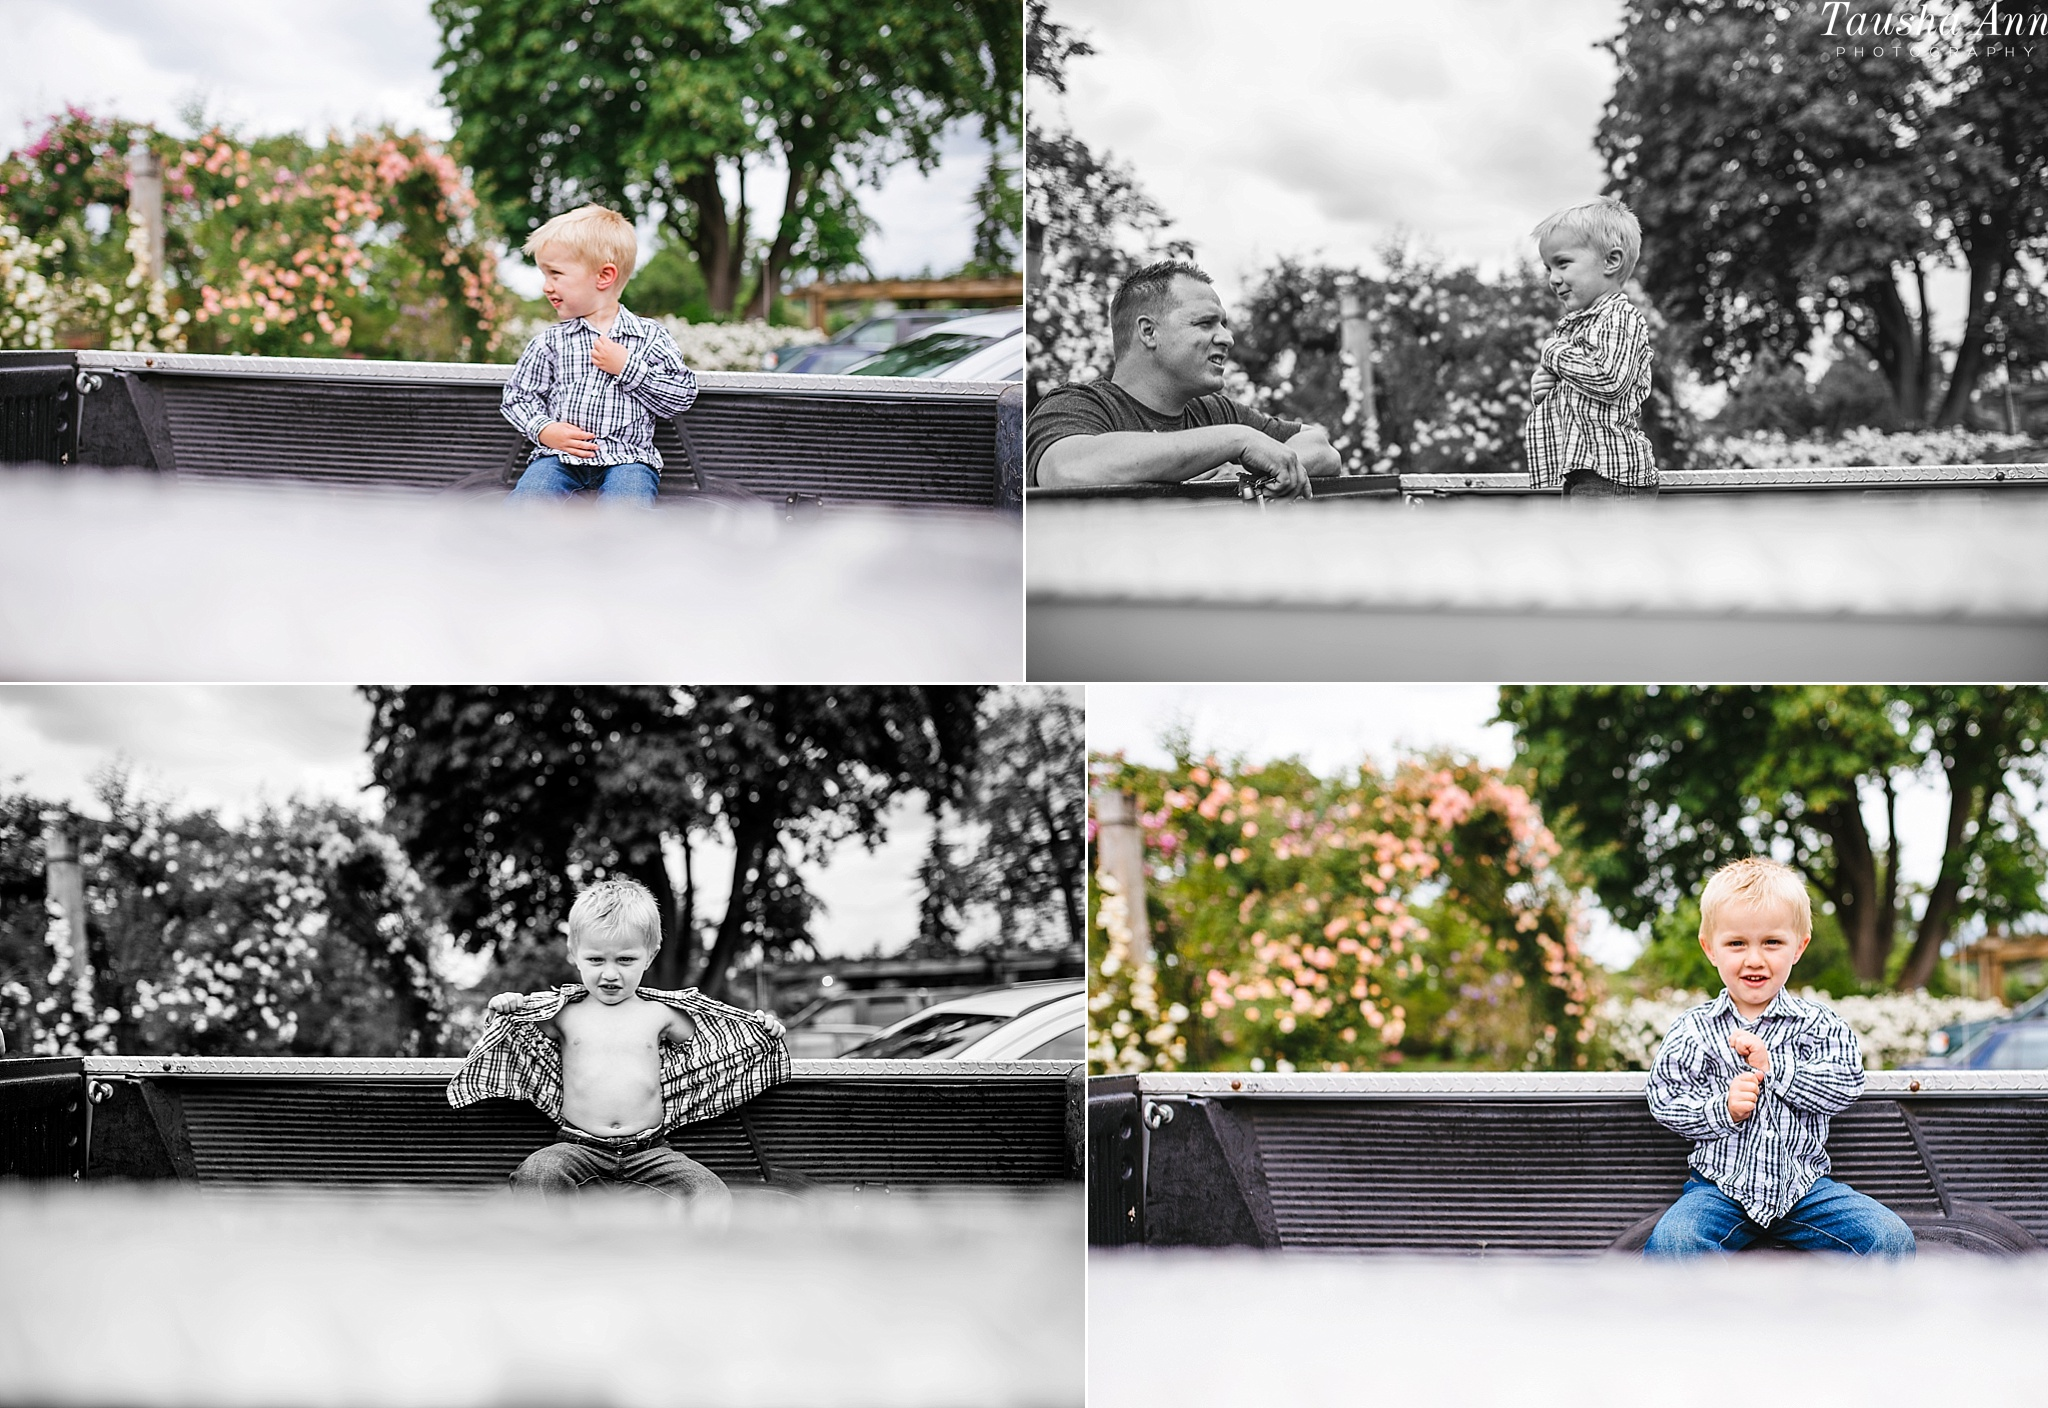 Nashville_Family_Photographer_Tausha_Ann_Photography_Eugene_Oregon_0041